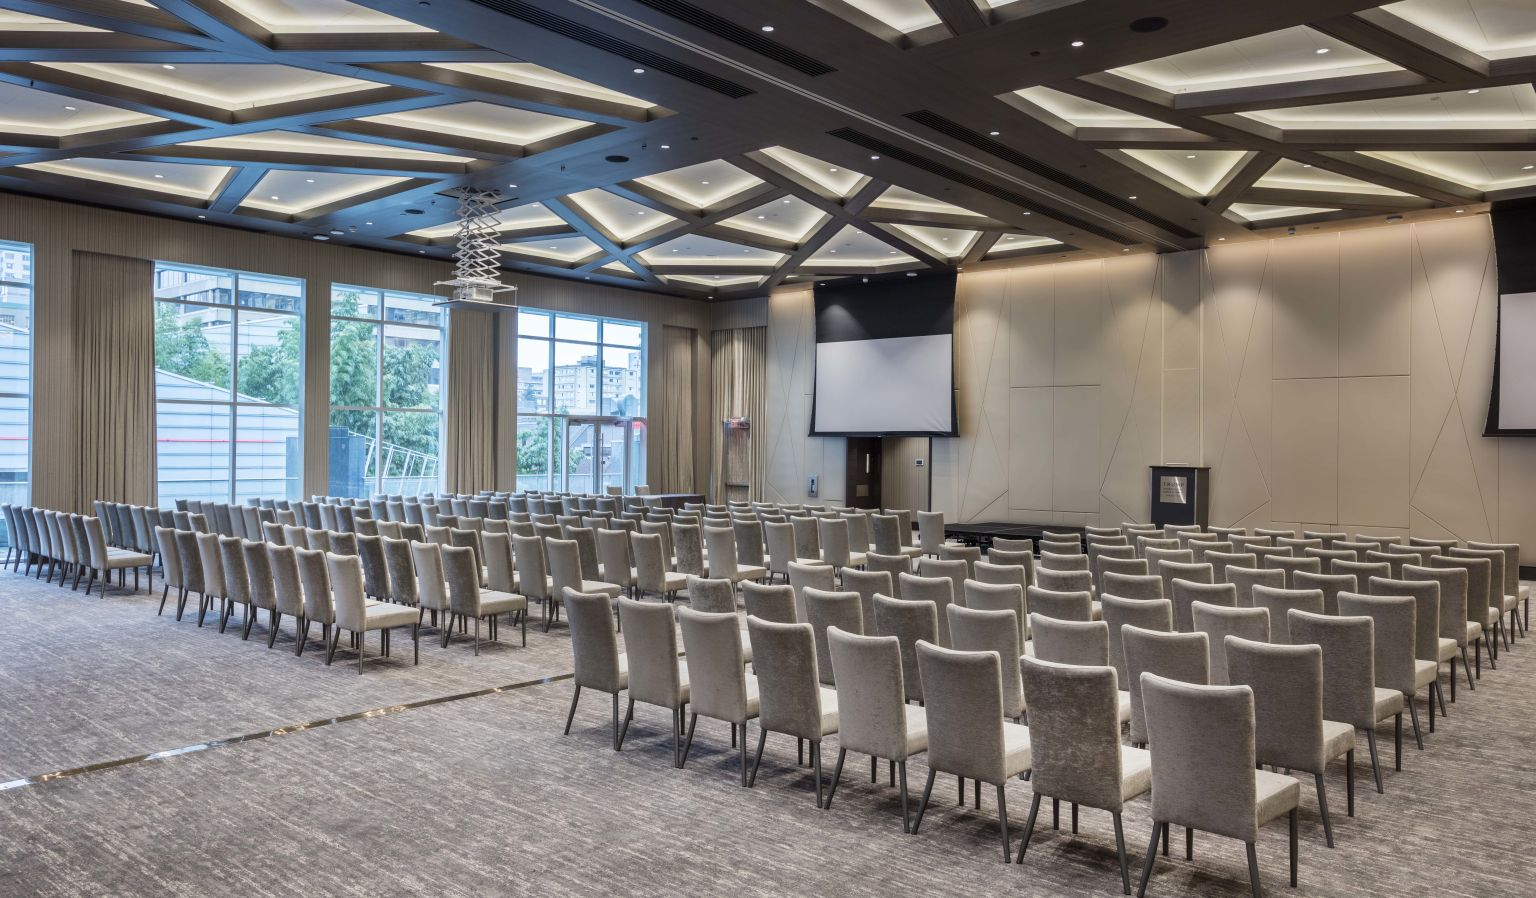 hotel interior conference room with projector, chairs